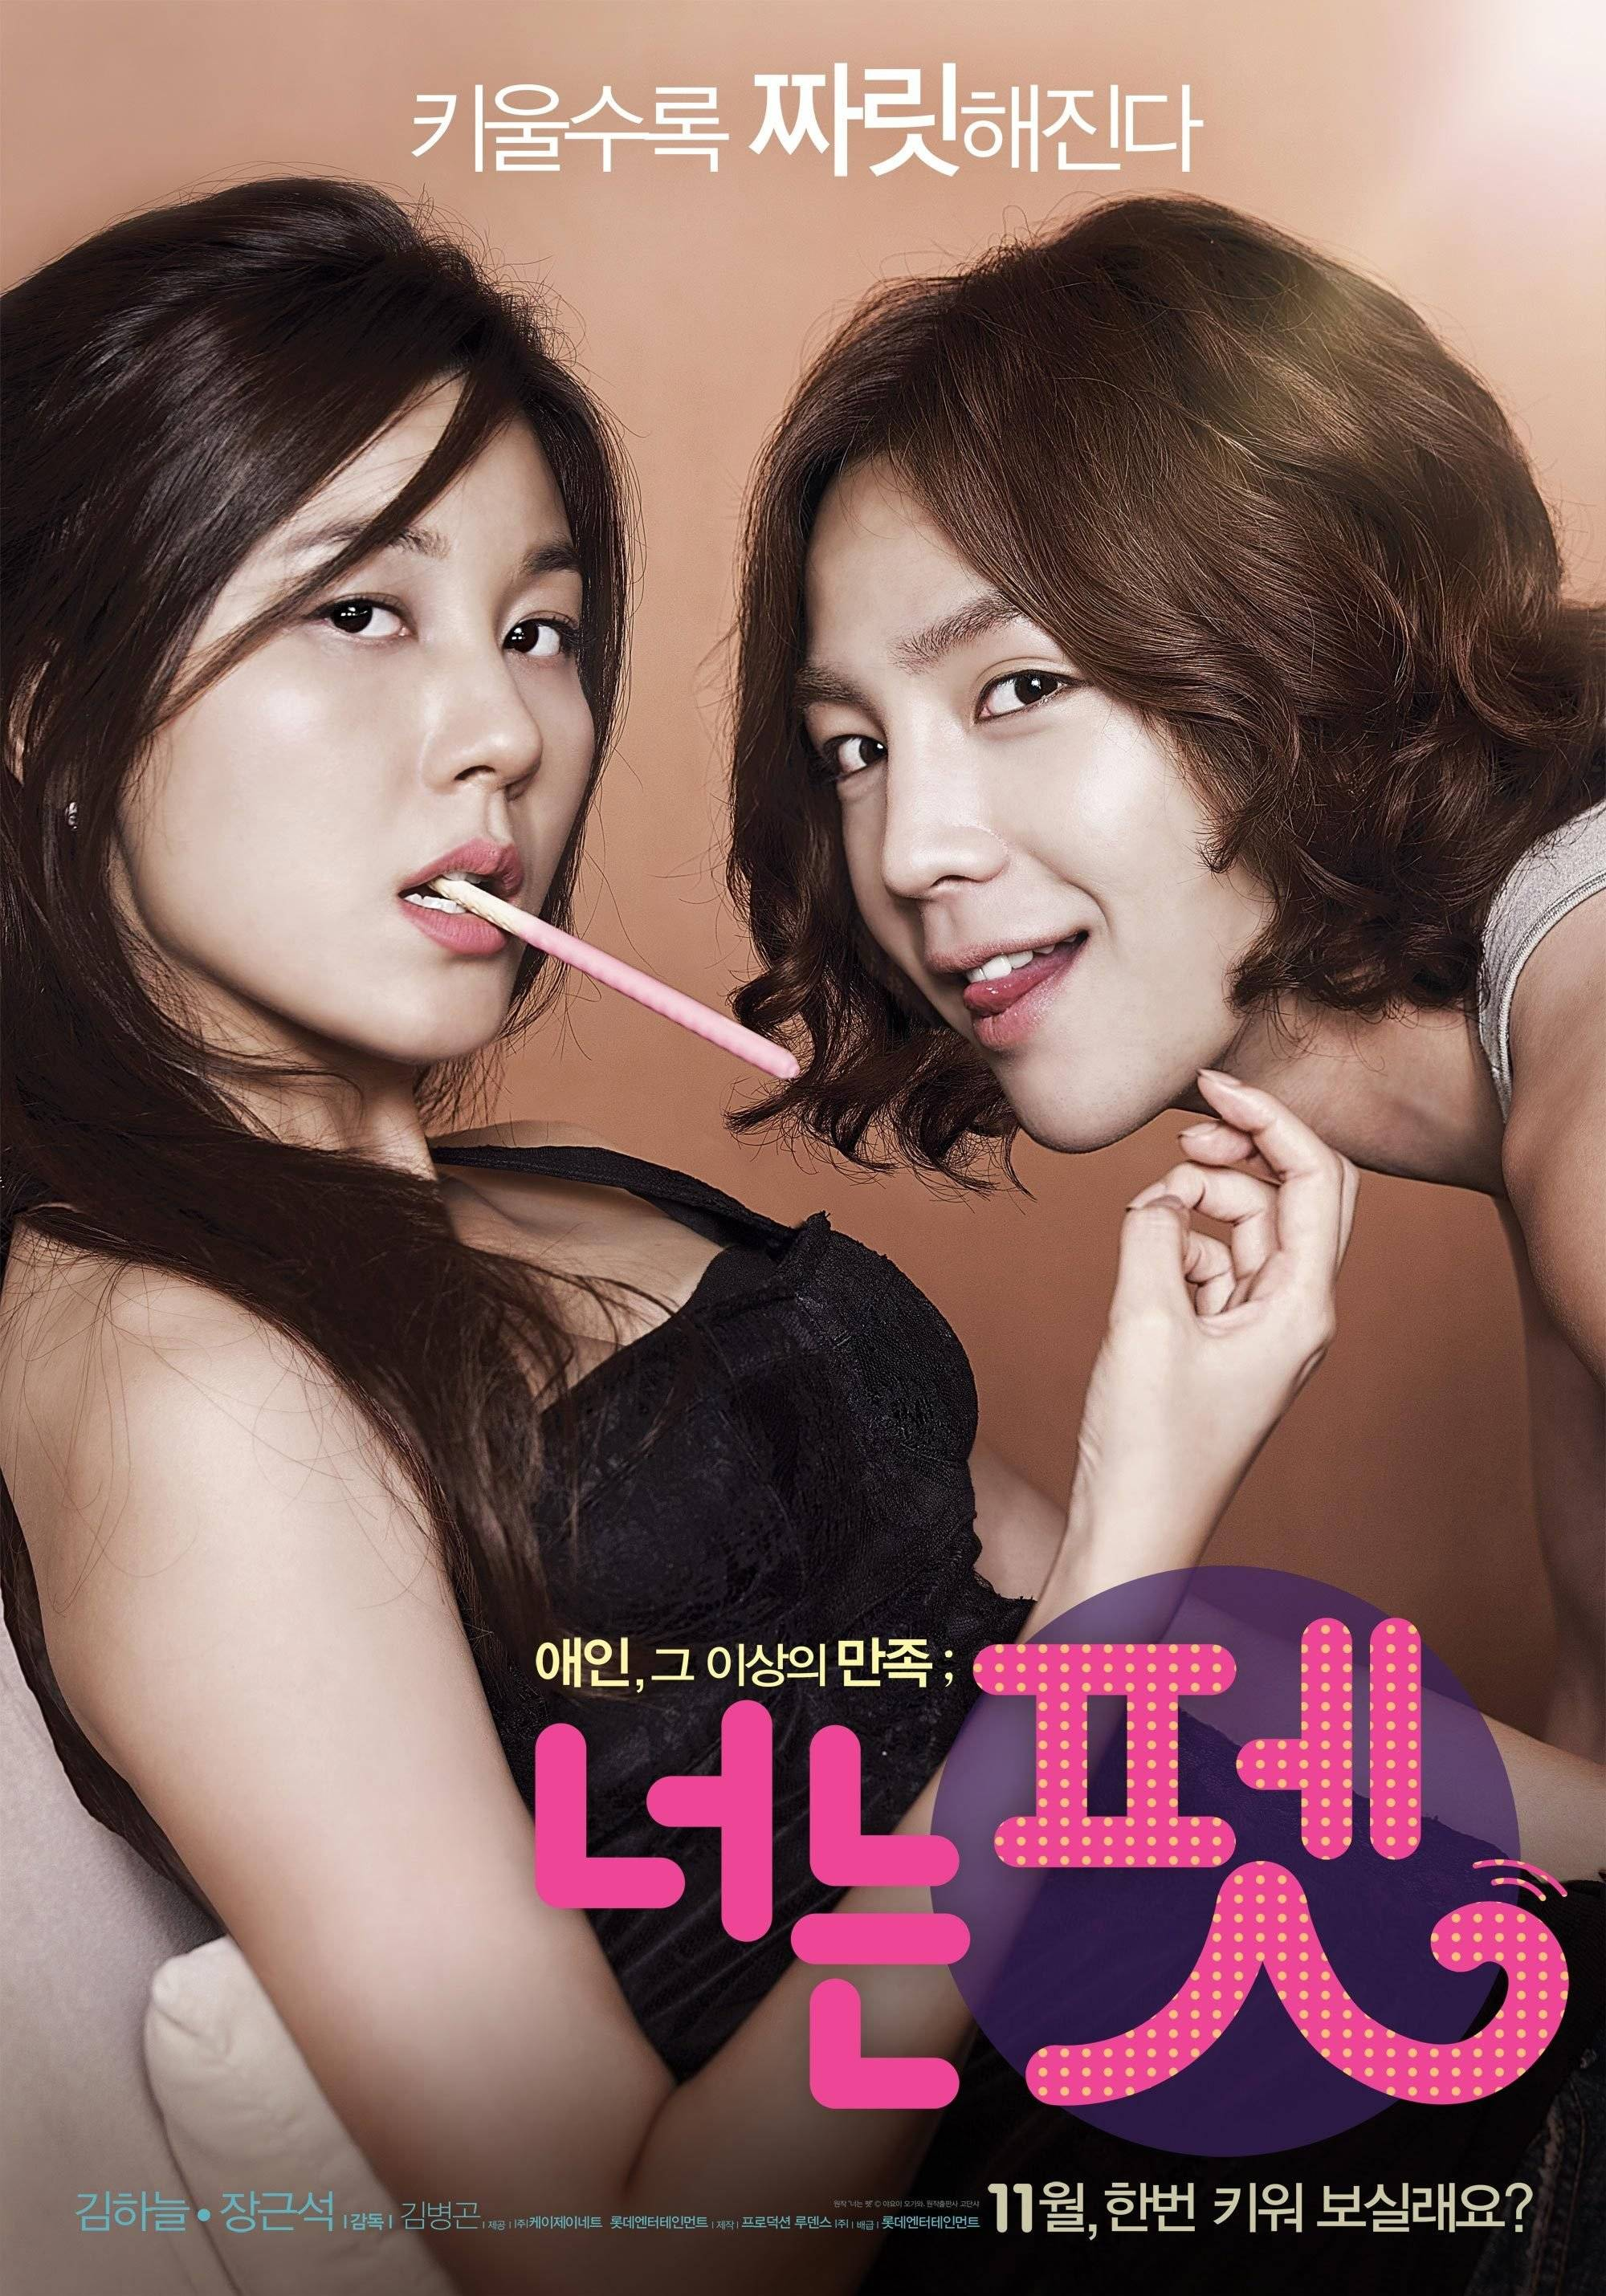 Korean movies opening today 2011/11/10 in Korea @ HanCinema